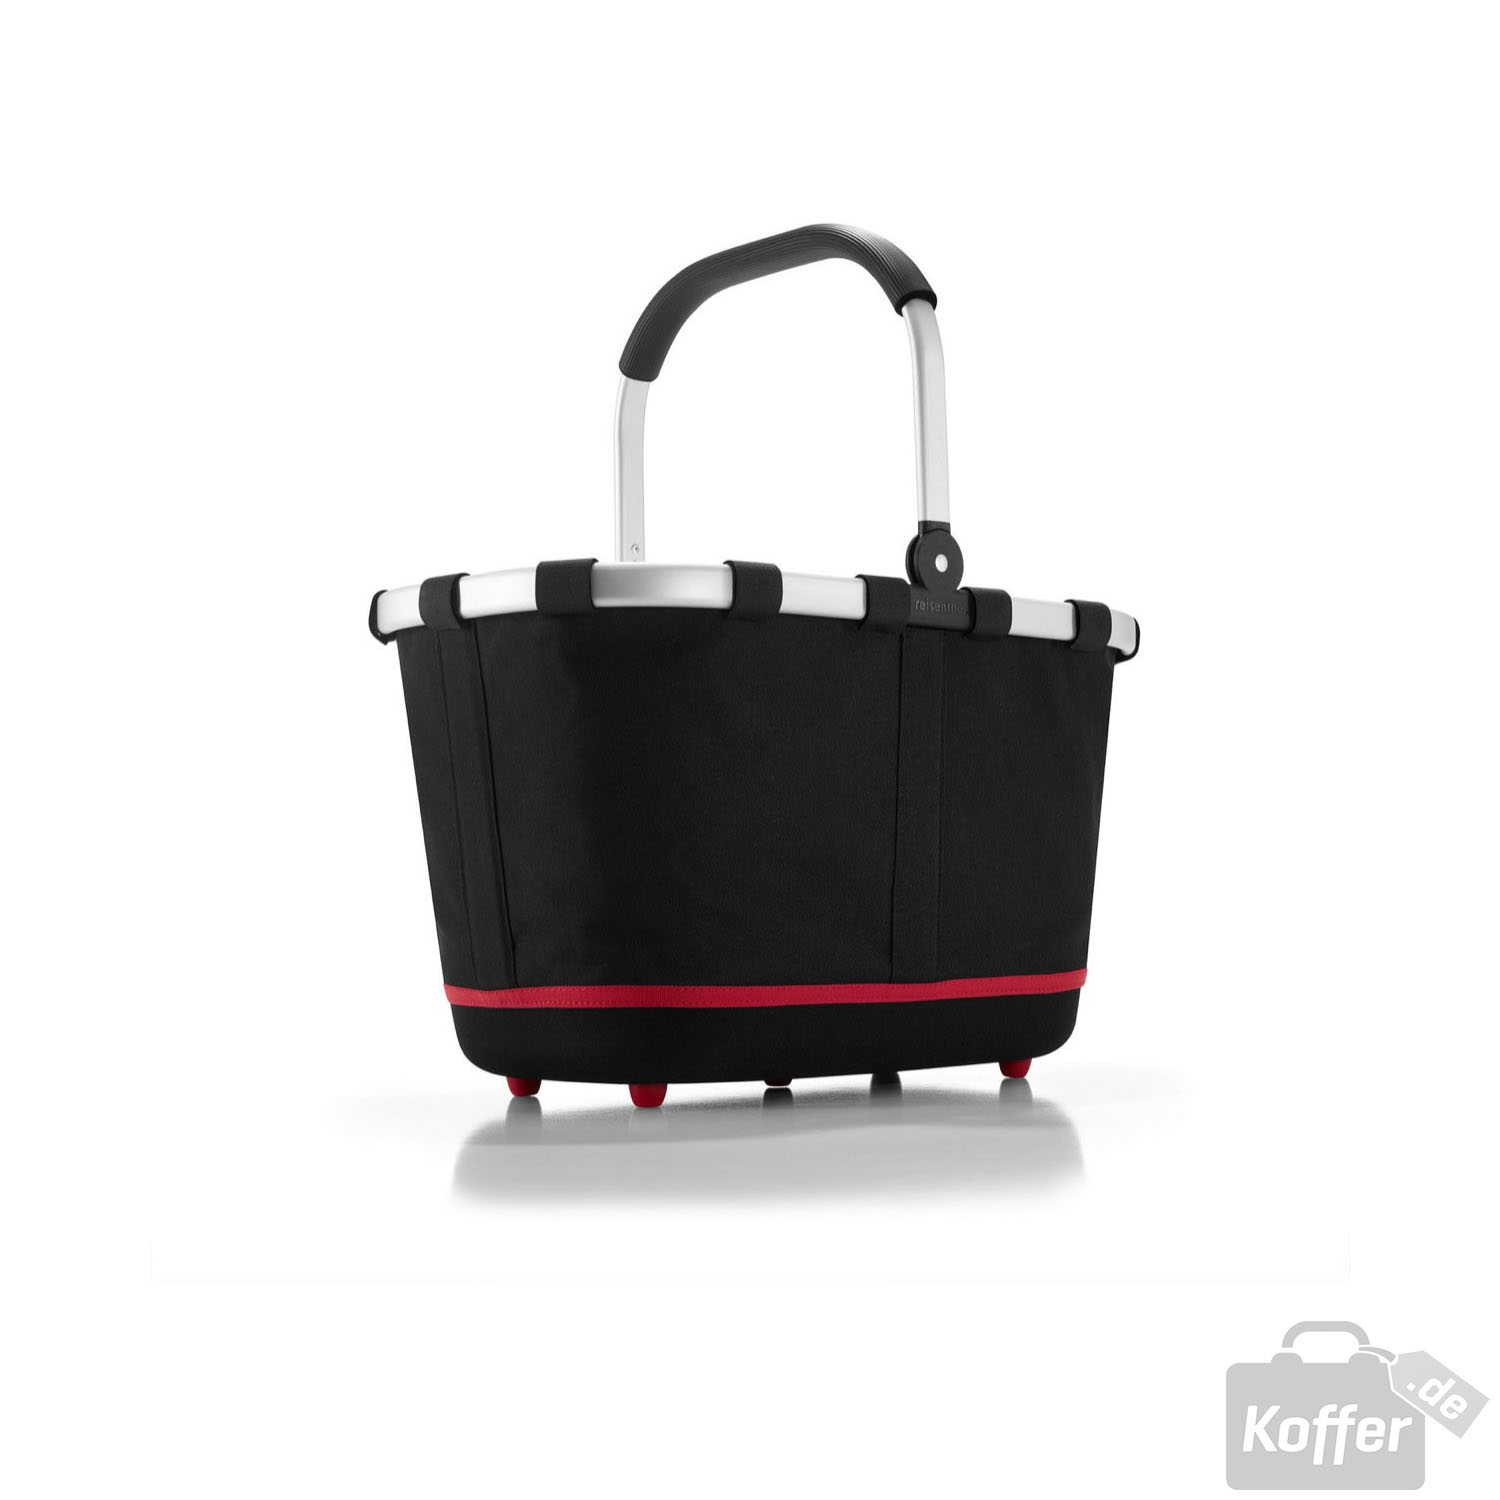 reisenthel shopping carrybag2 black jetzt auf online kaufen. Black Bedroom Furniture Sets. Home Design Ideas